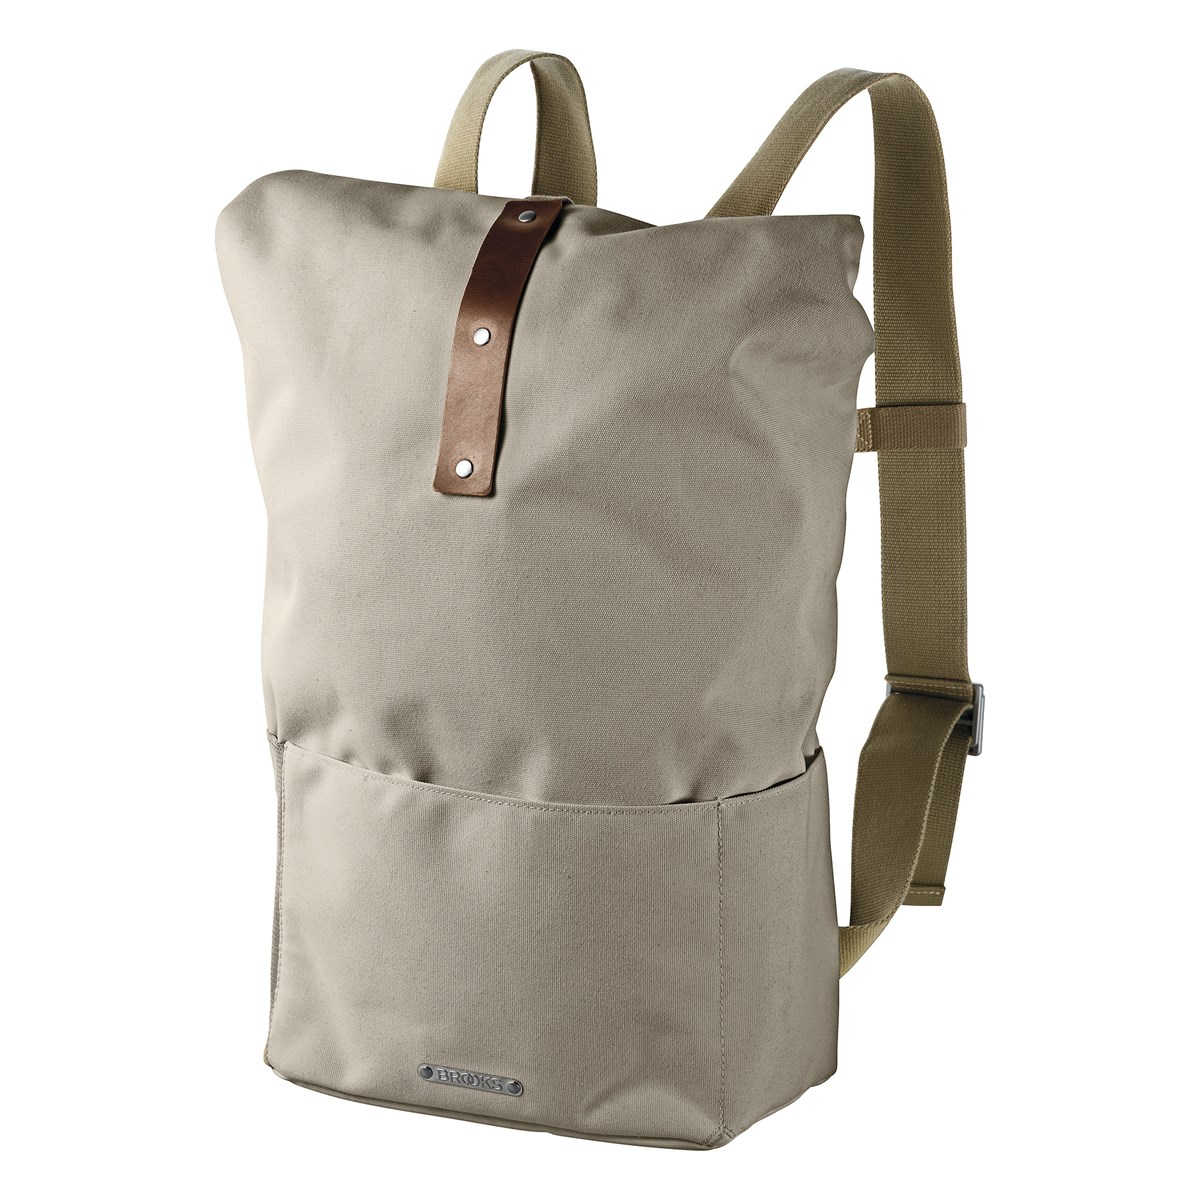 d86f3ace4 Details about BROOKS England Hackney Utility Backpack 24-30L Cycle Bag Day  Pack Dove/White